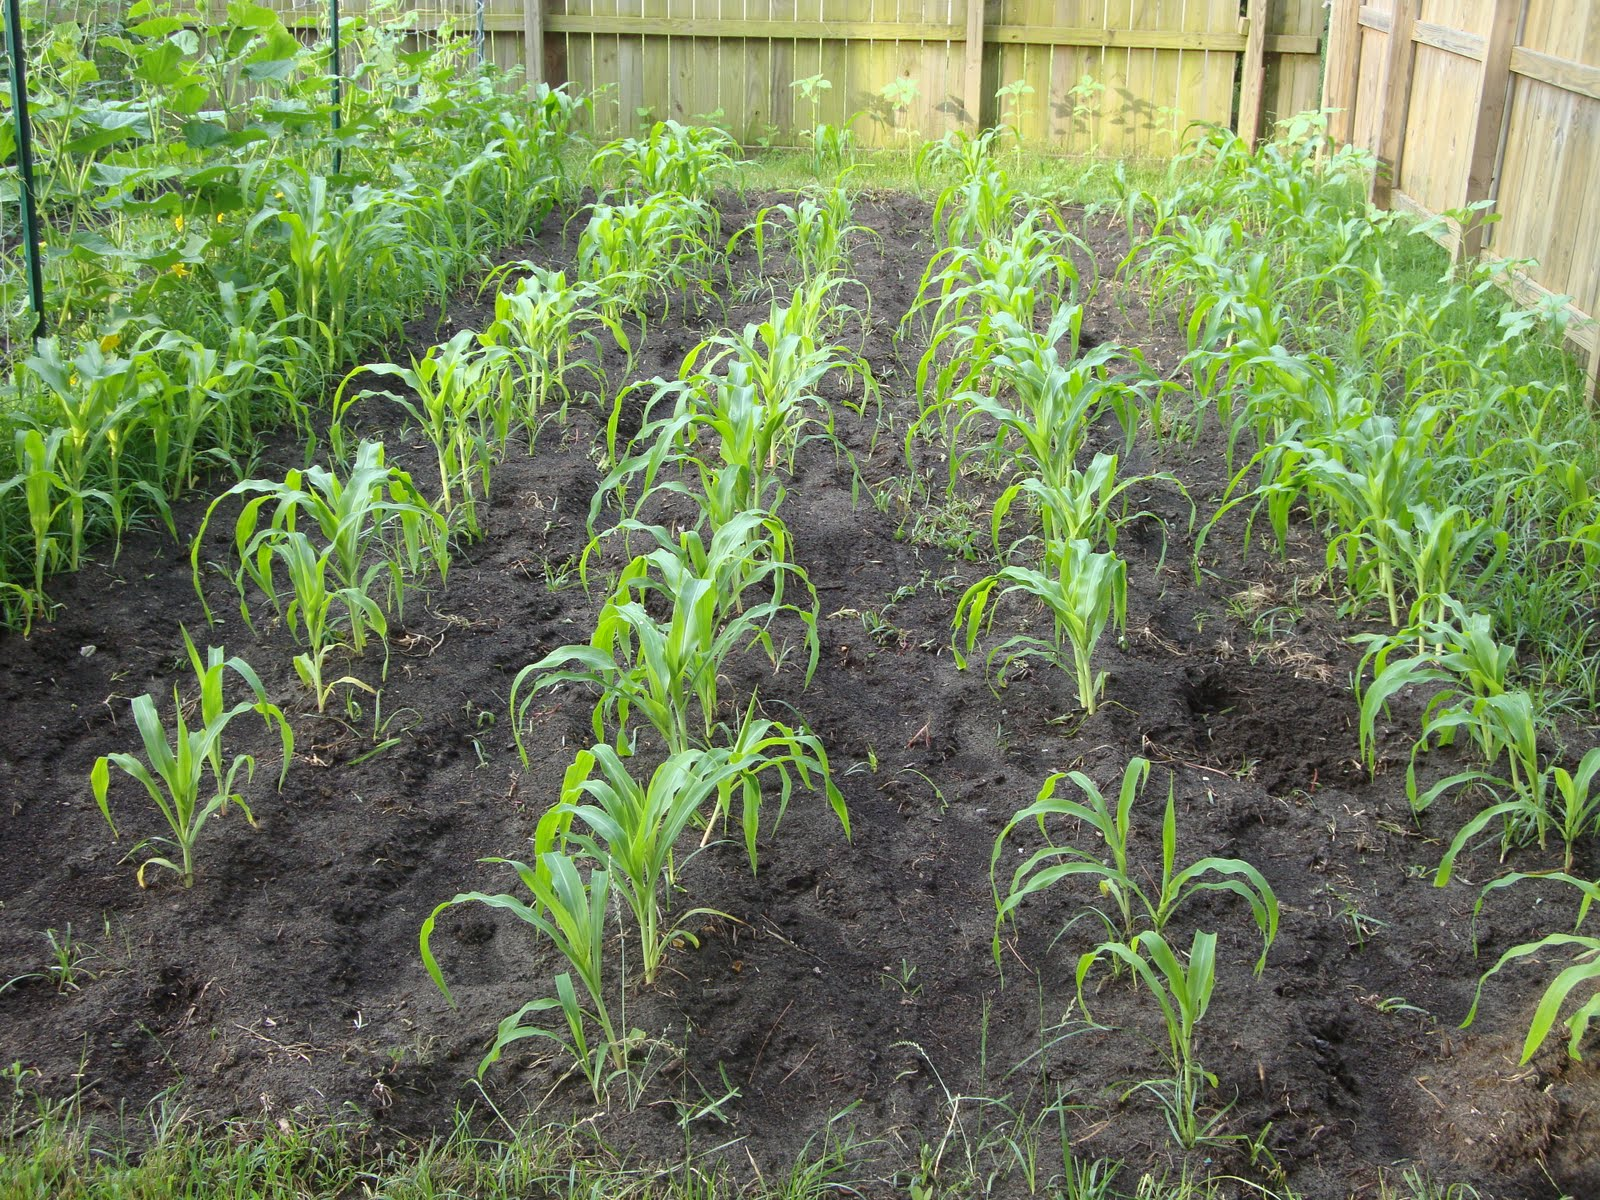 Back Yard Organic Vegetables: Preparation for and Planting ...